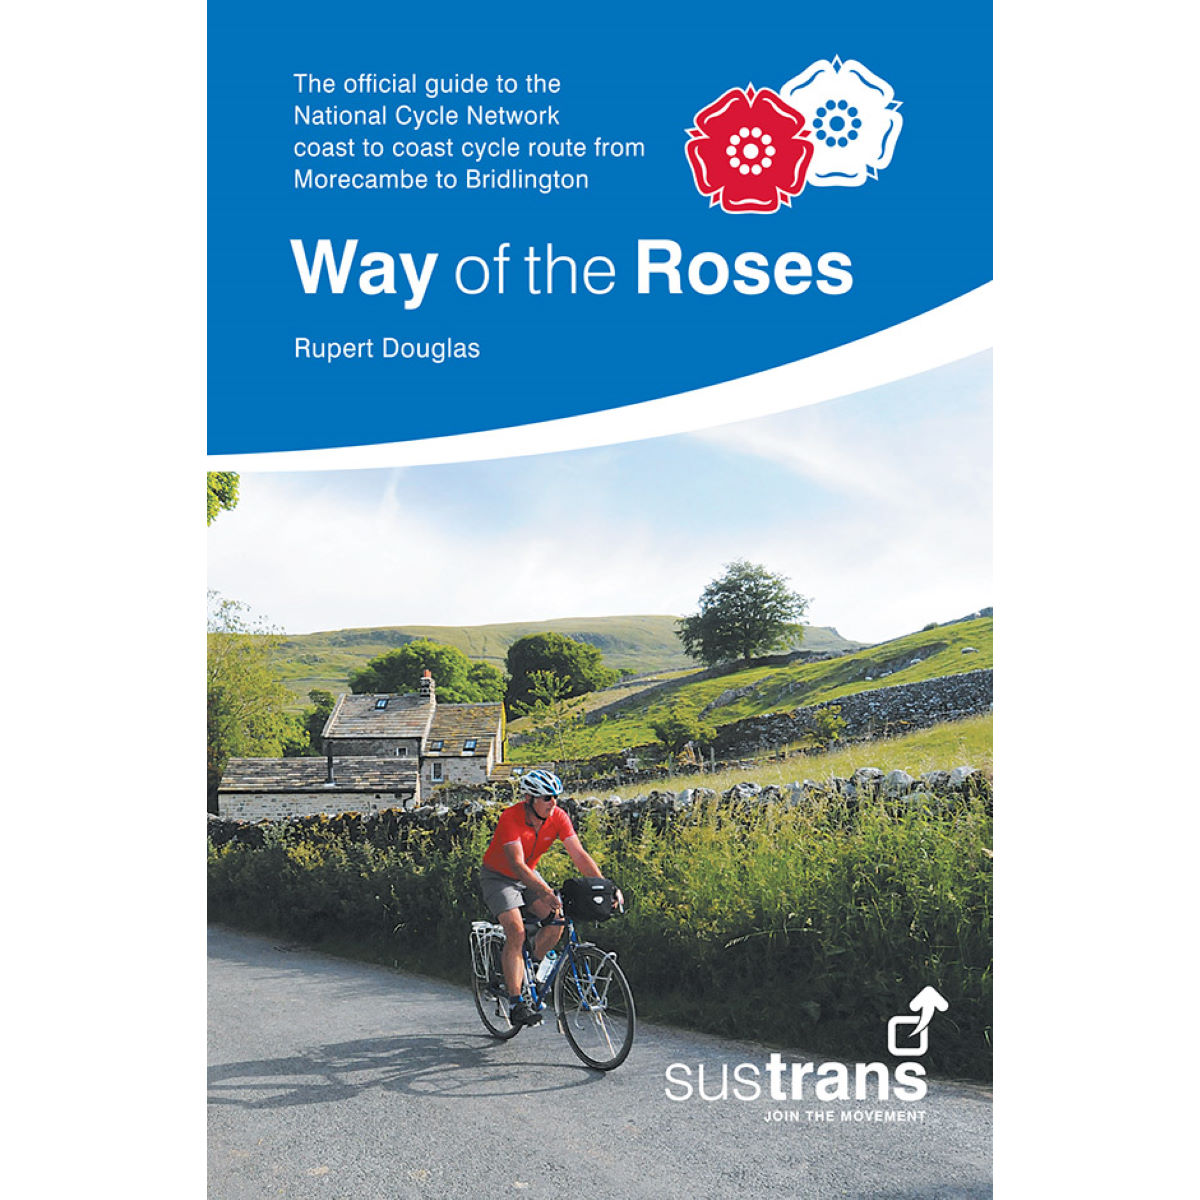 Topo-guide vélo Sustrans Way of the Roses Livres & cartes